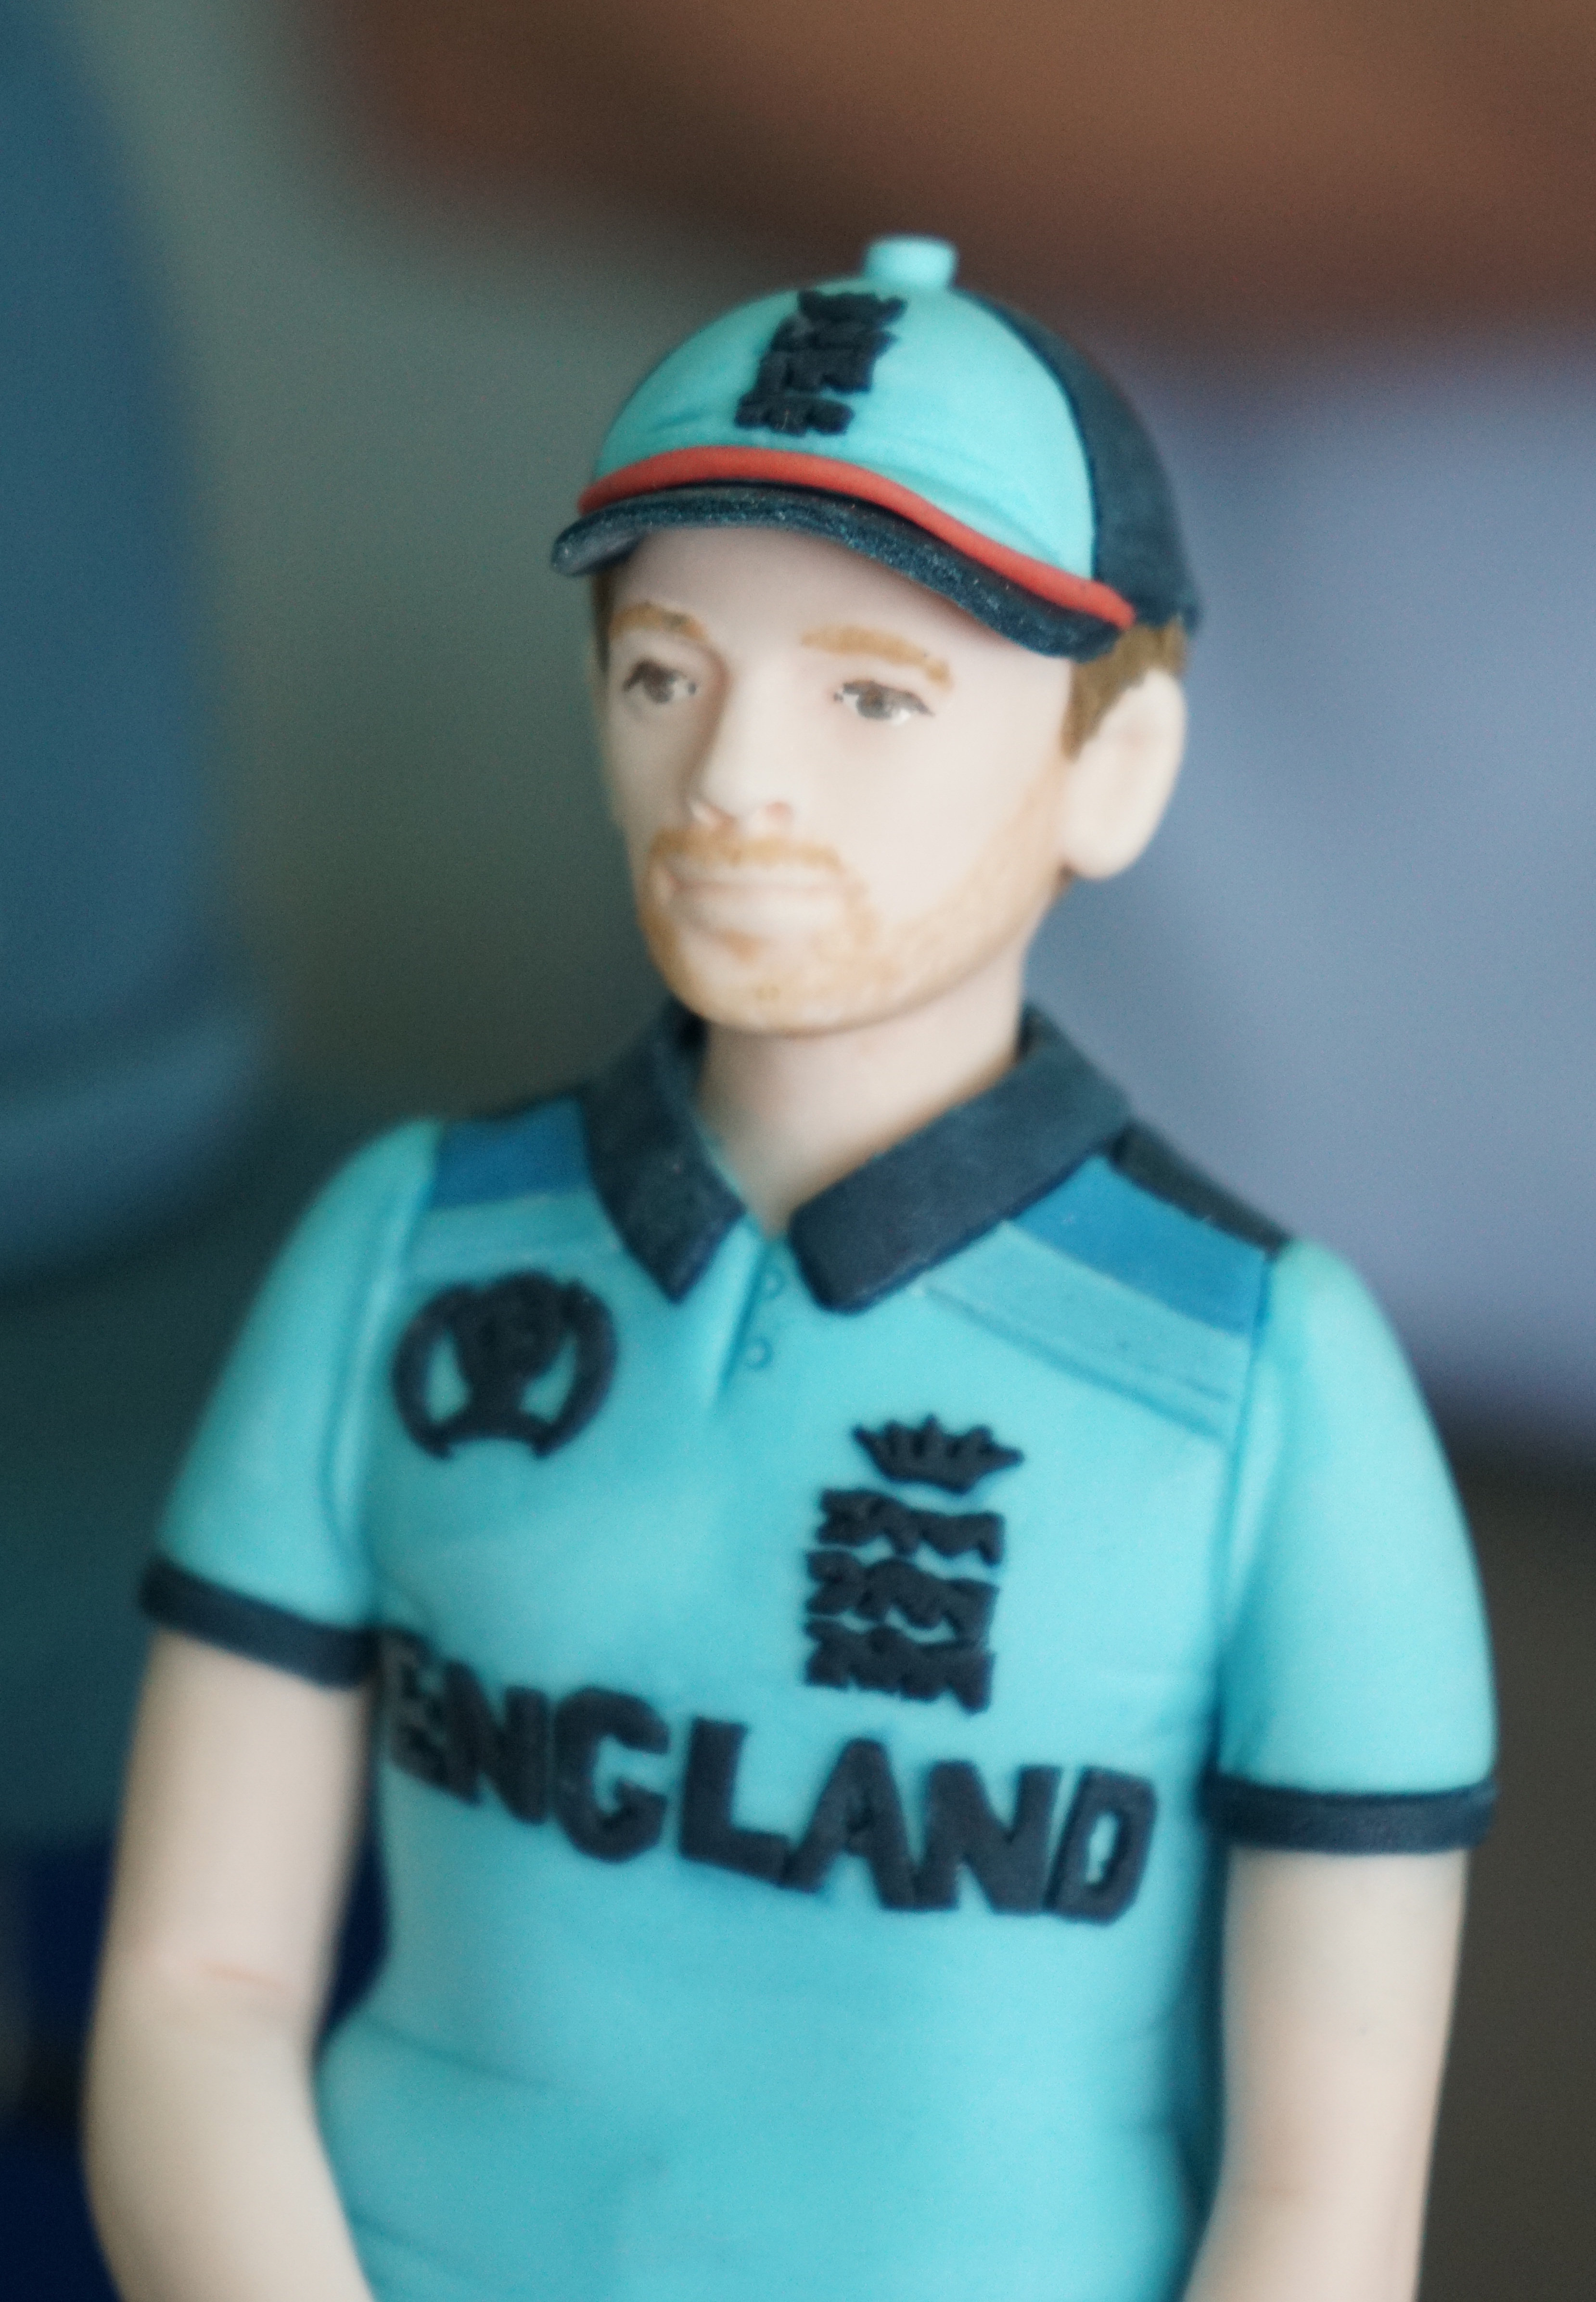 England captain Eoin Morgan as depicted on the cake